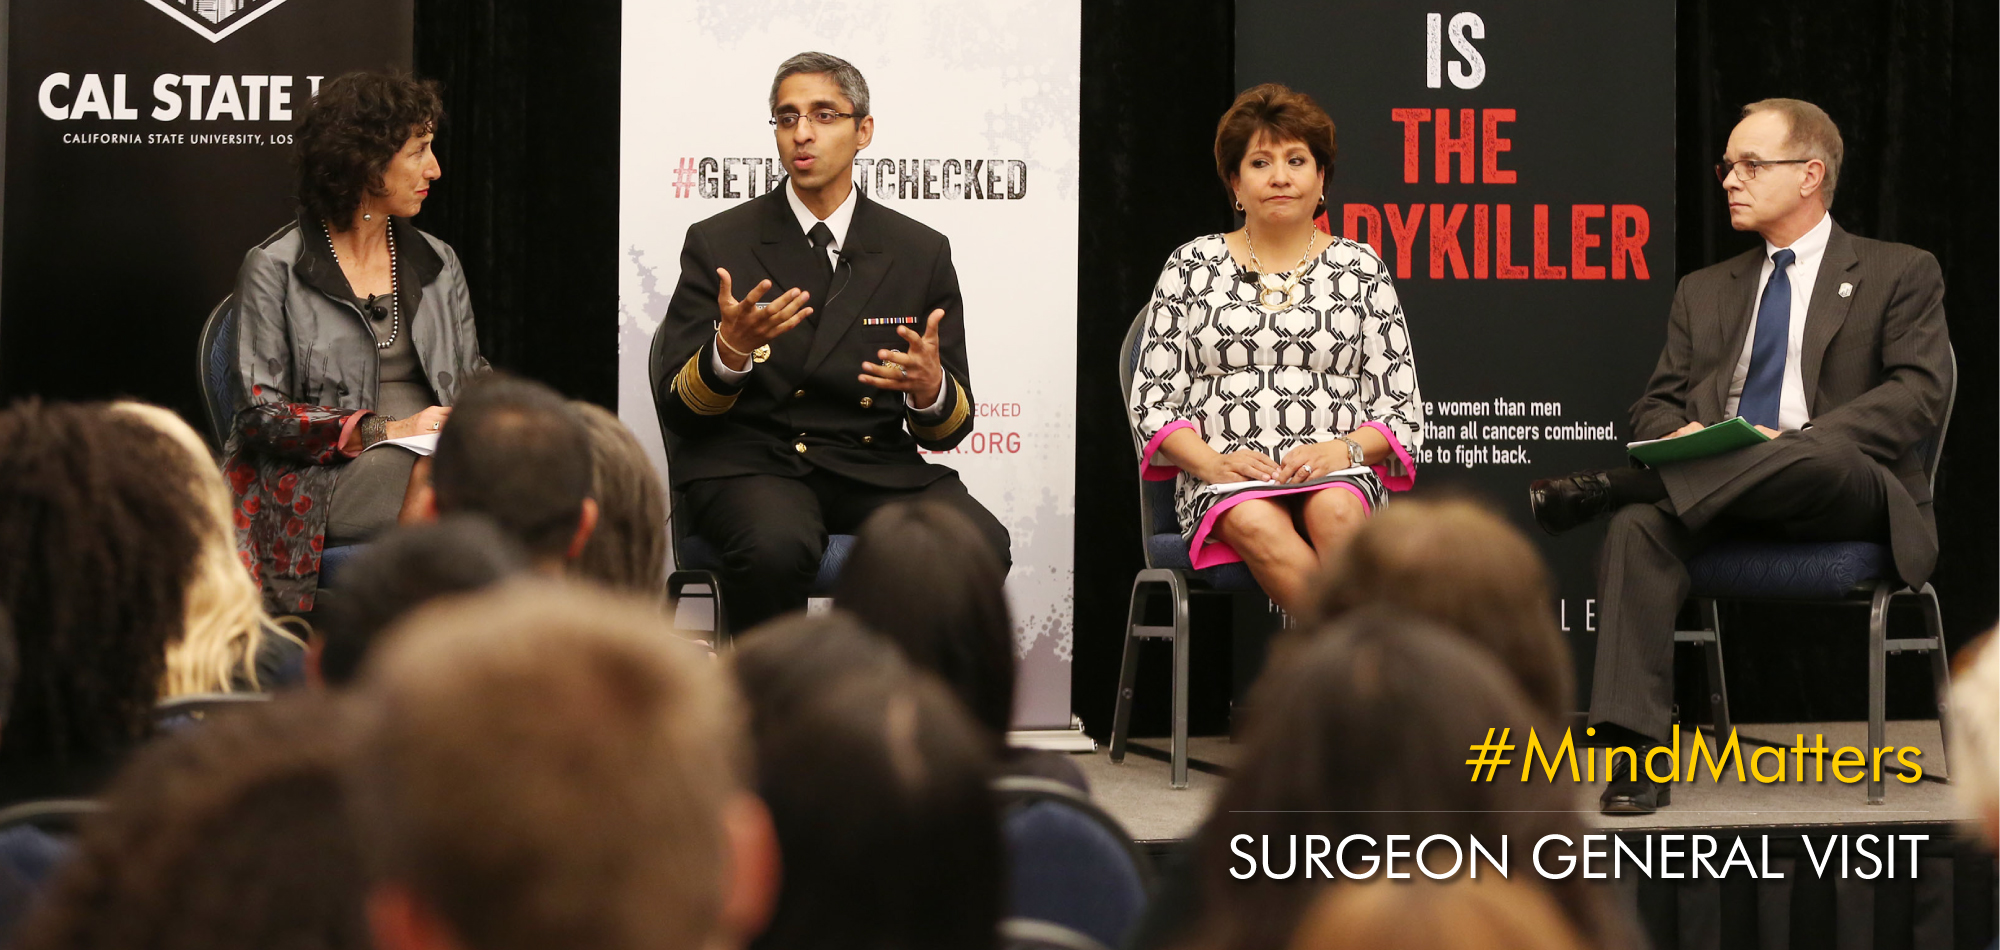 Surgeon General promotes wellbeing with Mind Matters